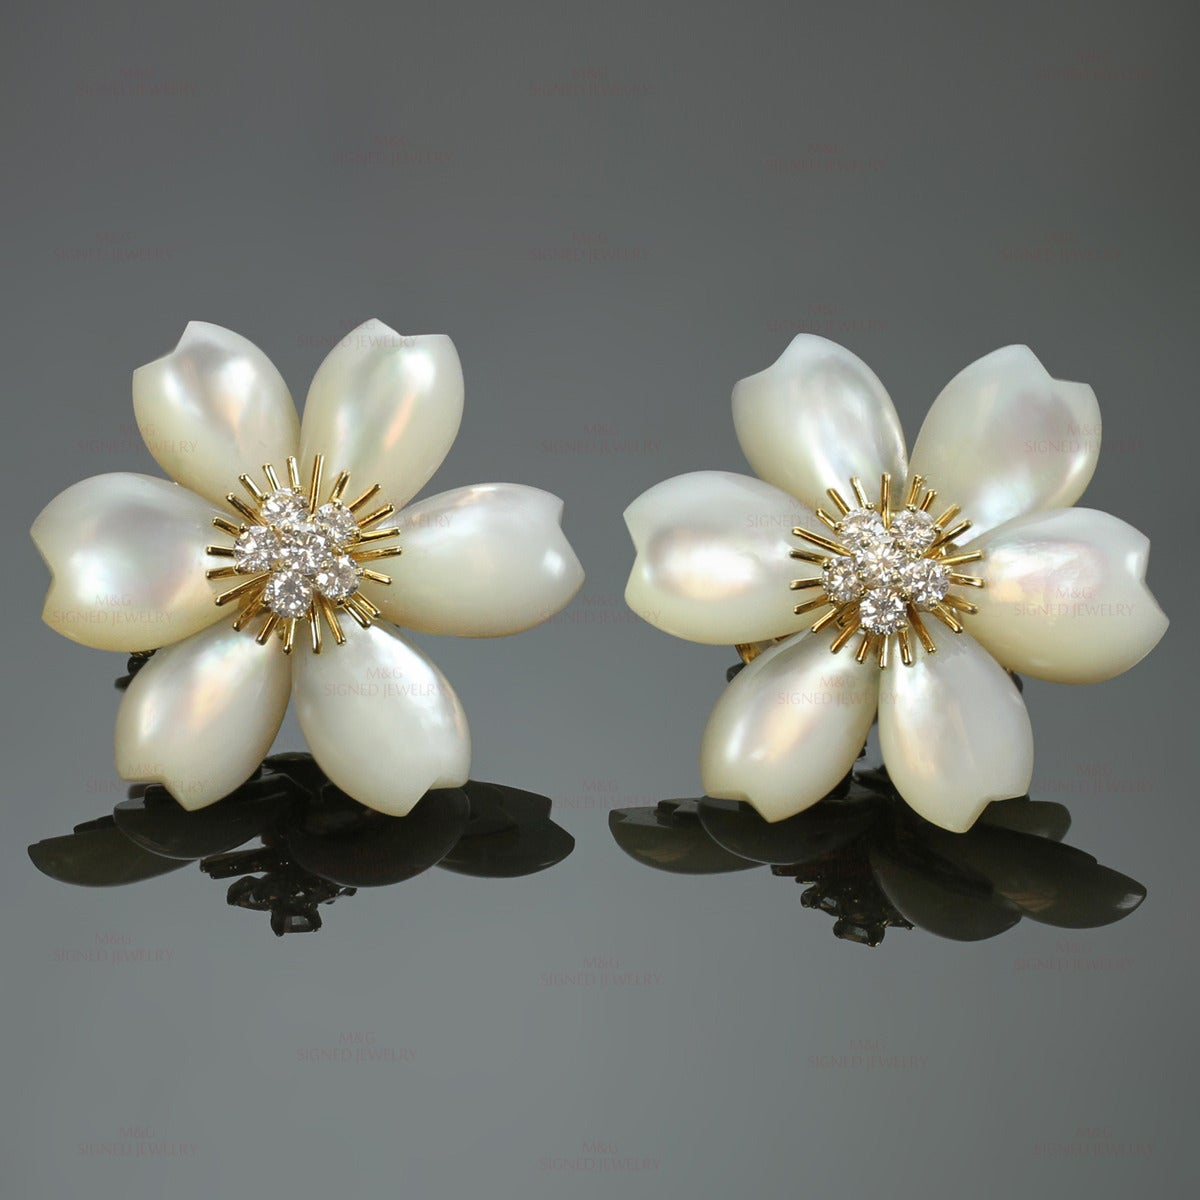 Van Cleef & Arpels Rose De Noel Diamond Mother-of-Pearl Flower Clip-on Earrings 2